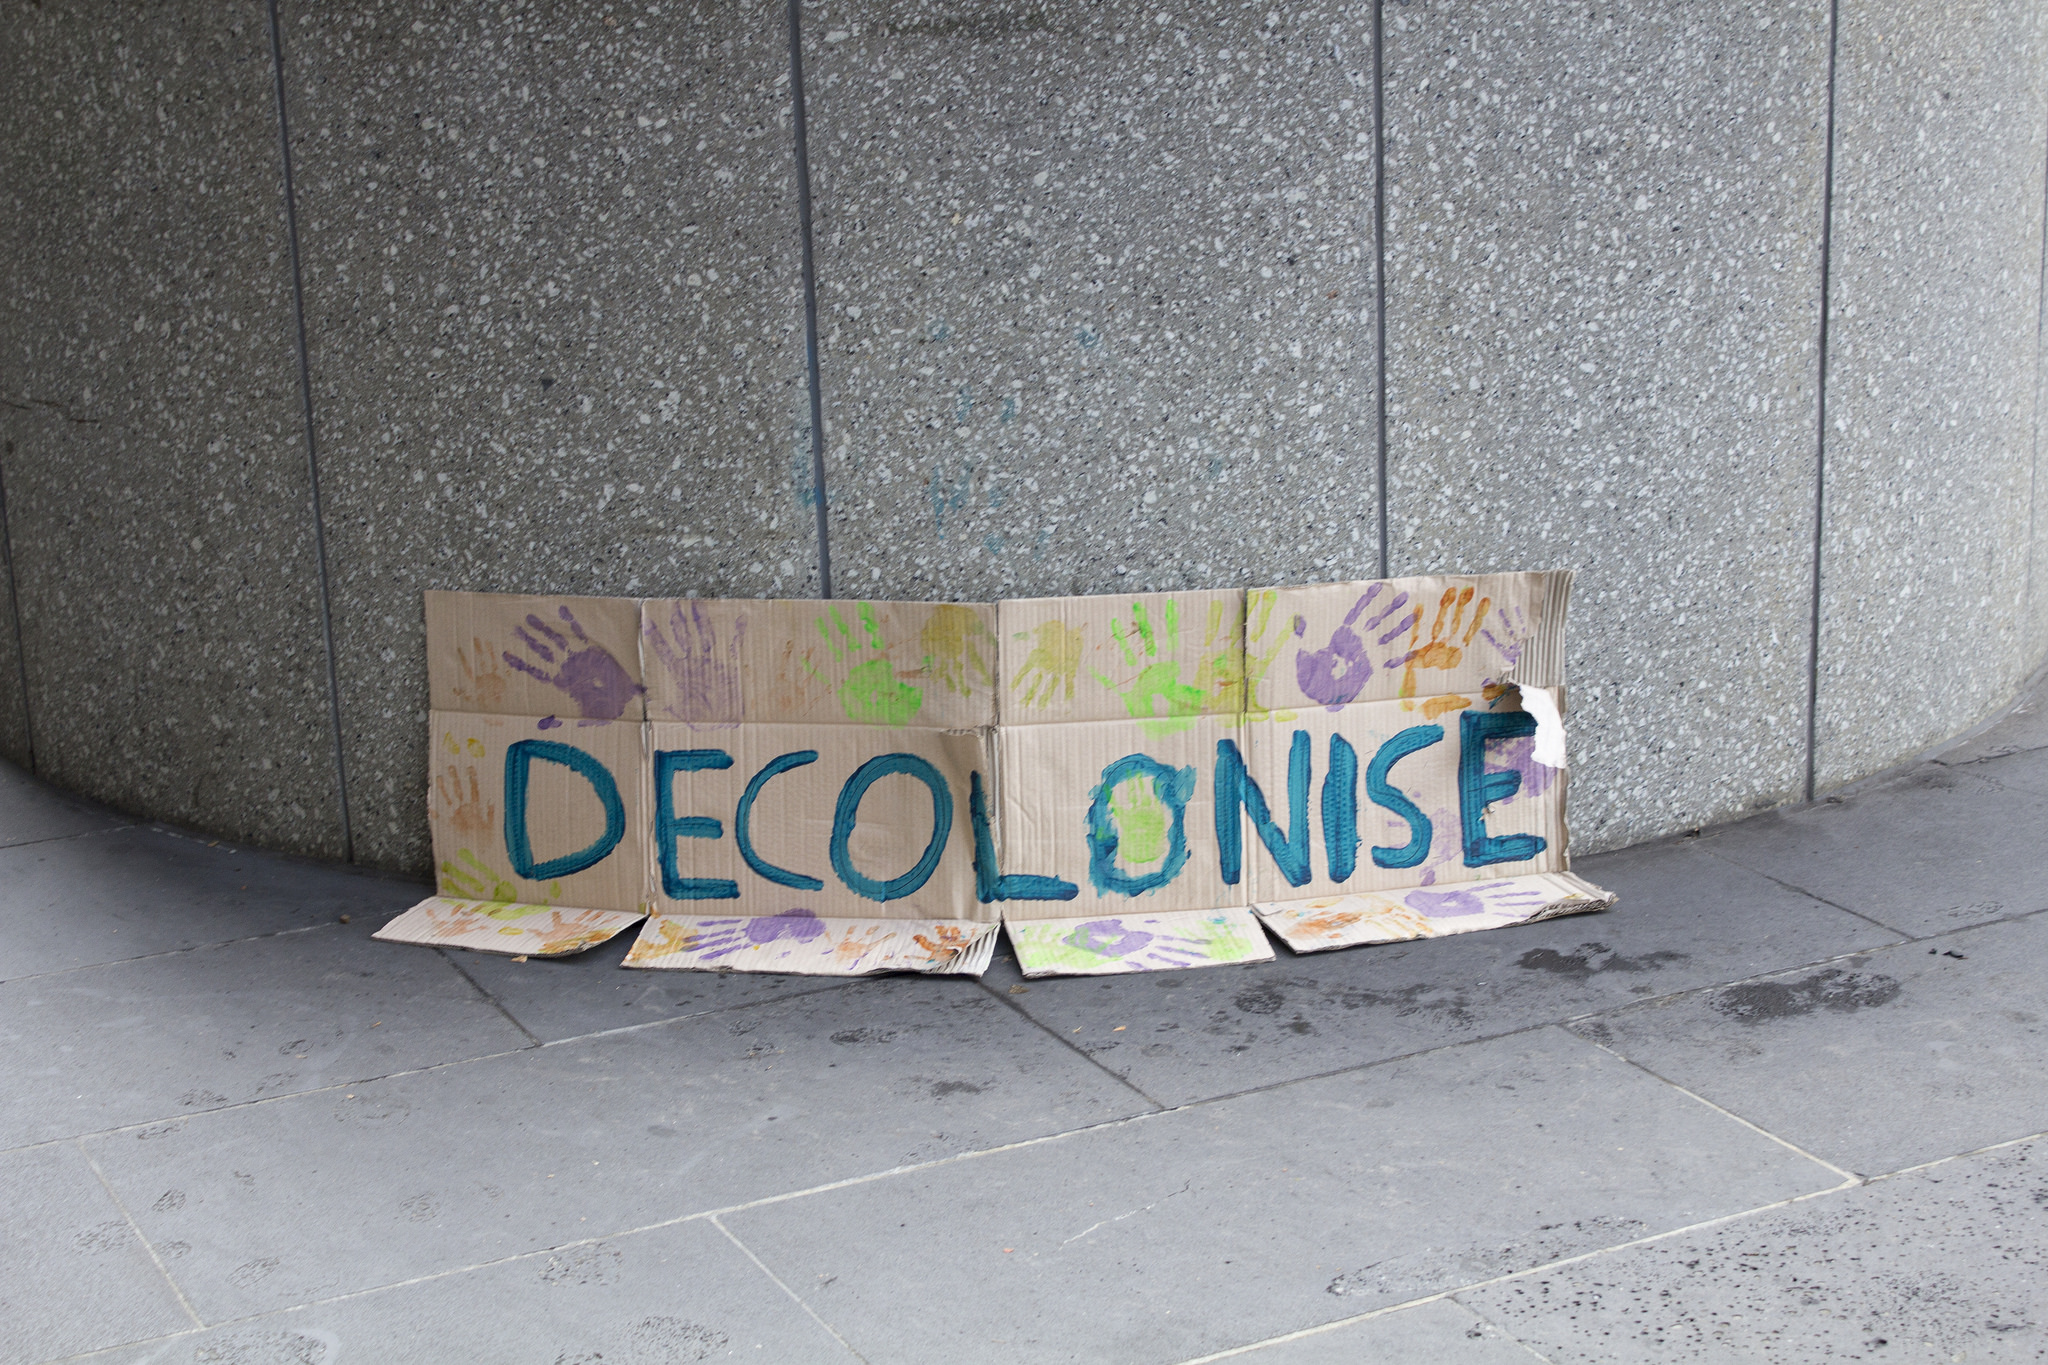 Multi-layered Selves: Colonialism, Decolonization and Counter-Intuitive Learning Spaces